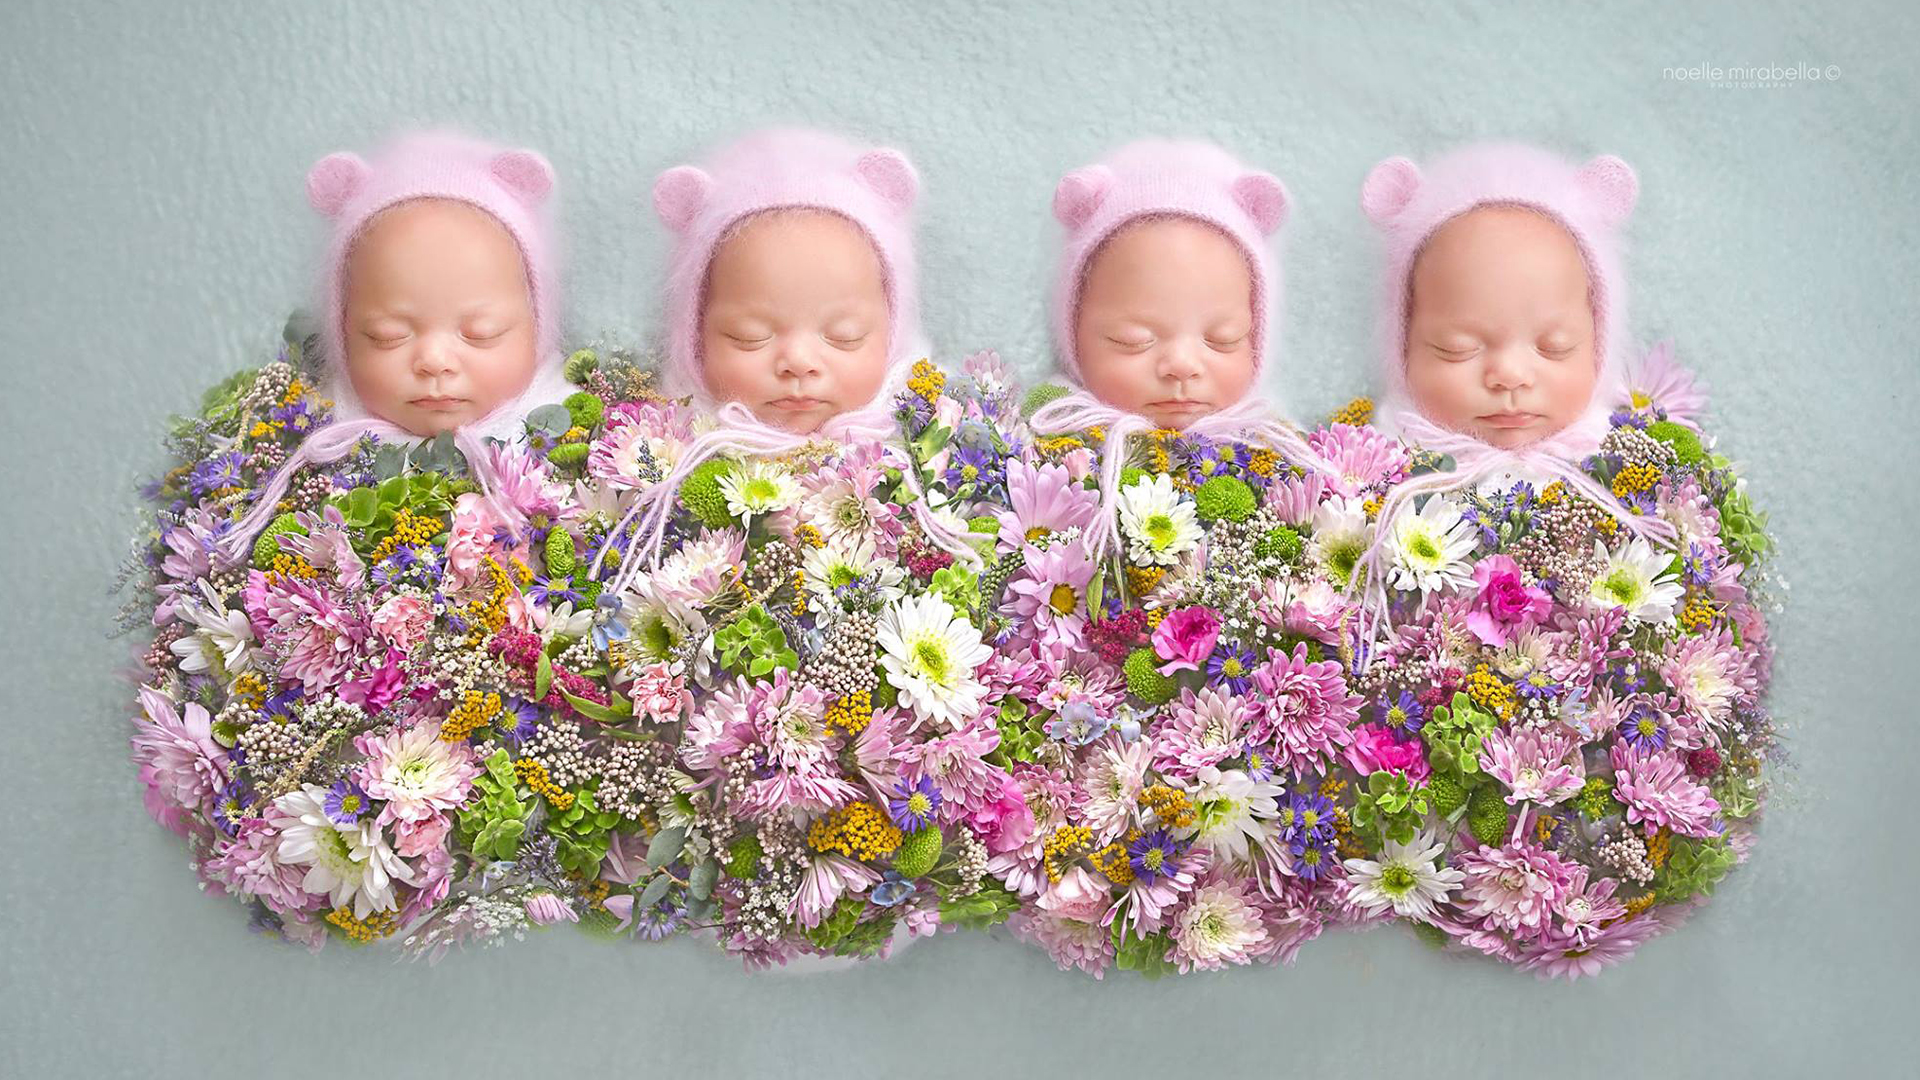 Identical Quadruplets From Canada Charm In New Baby Photos